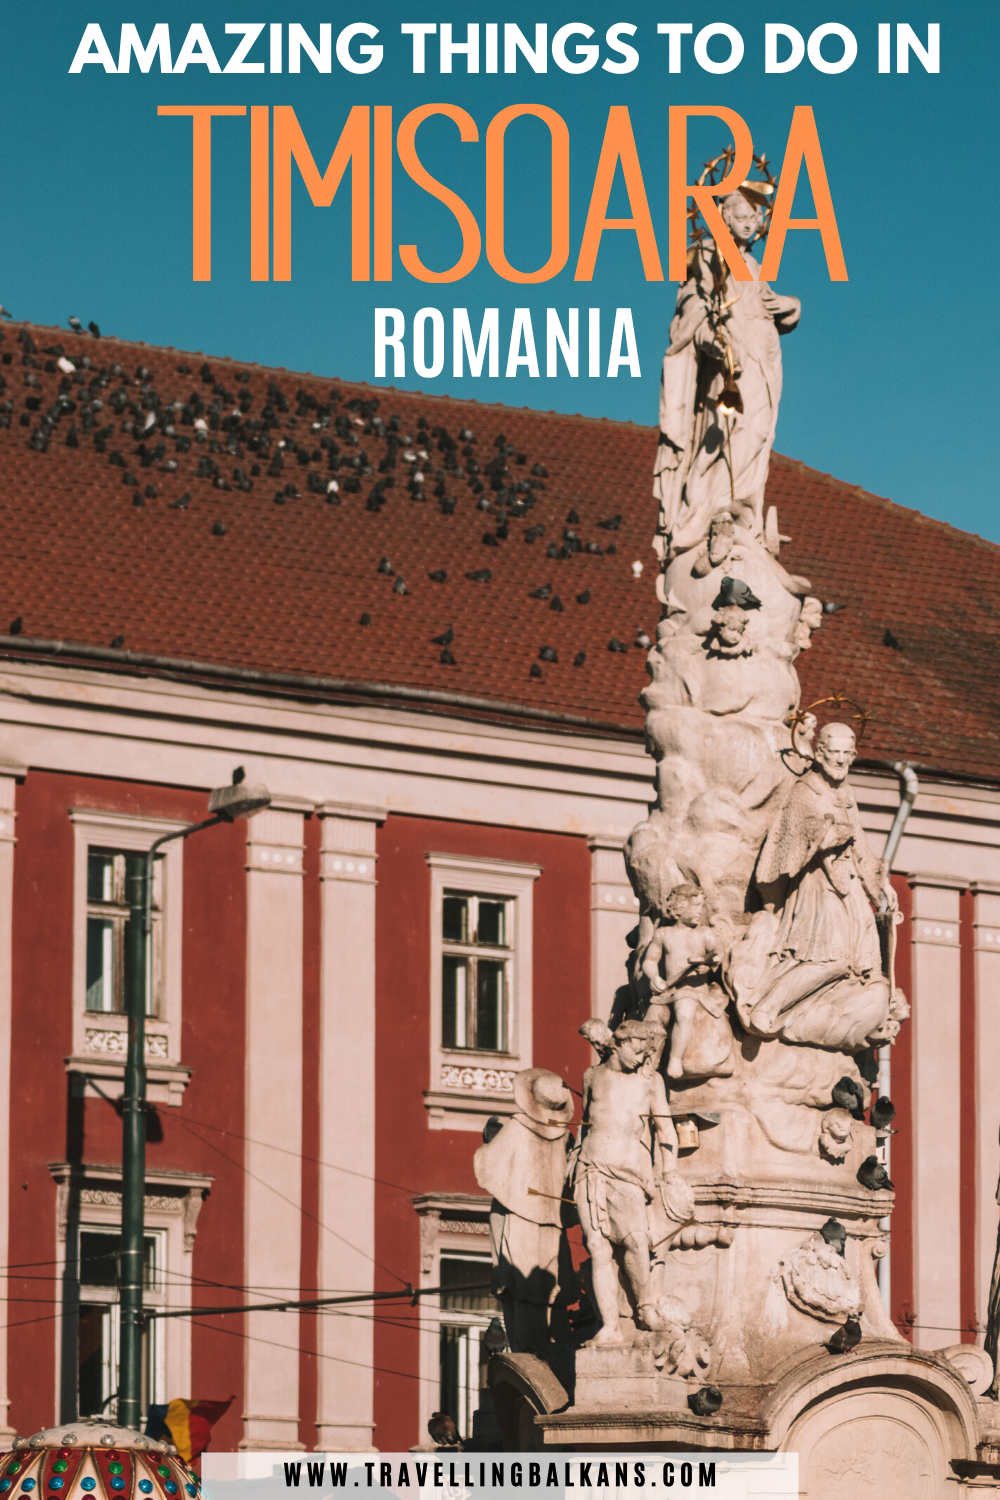 11 Incredible Things to Do in Timisoara, Romania